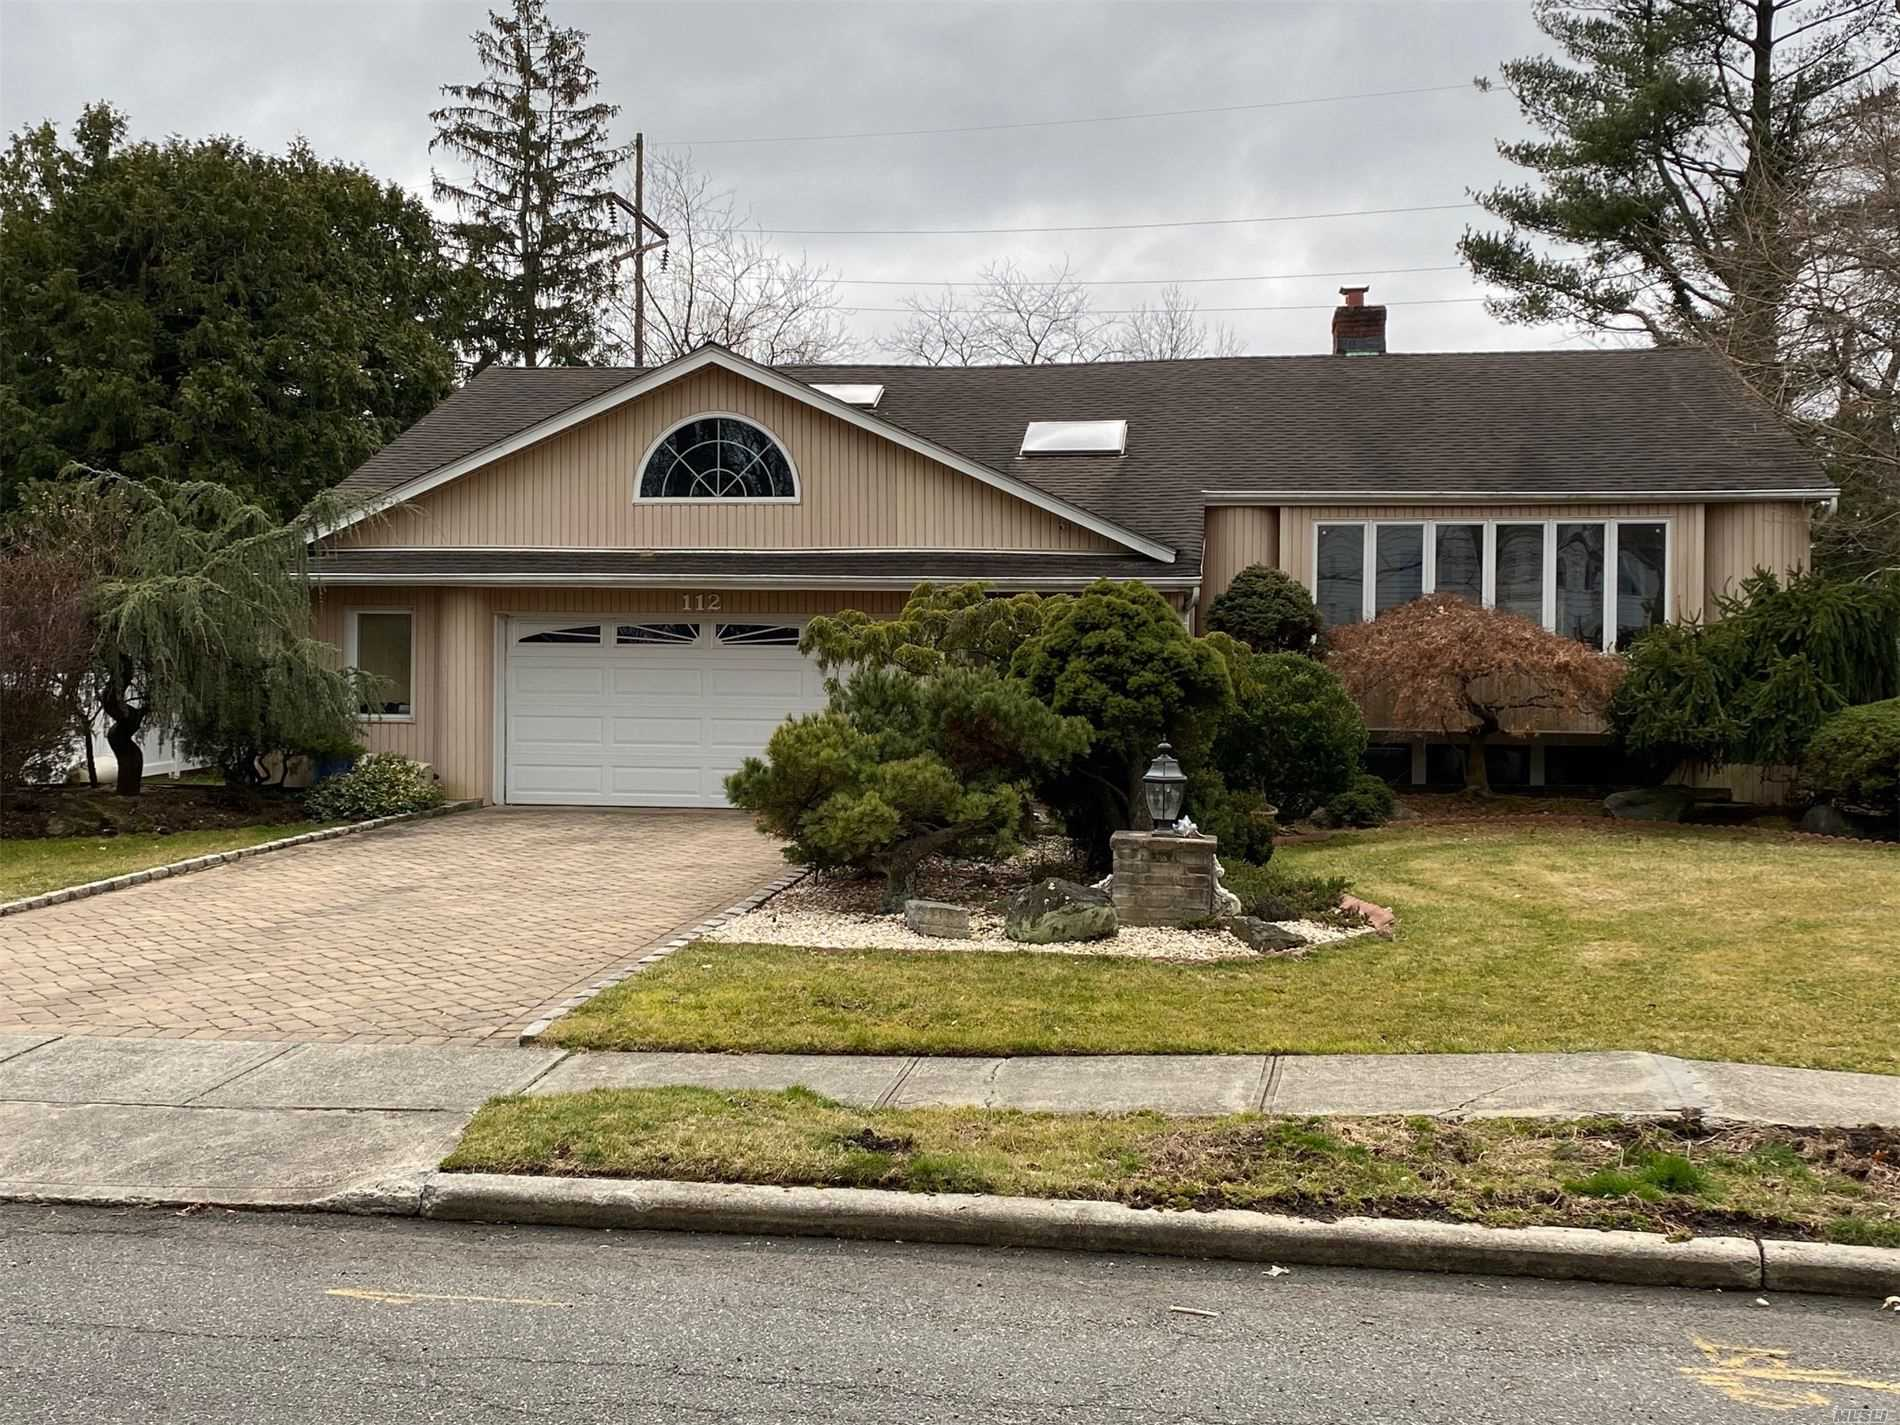 112 Dogwood Rd - Roslyn, New York